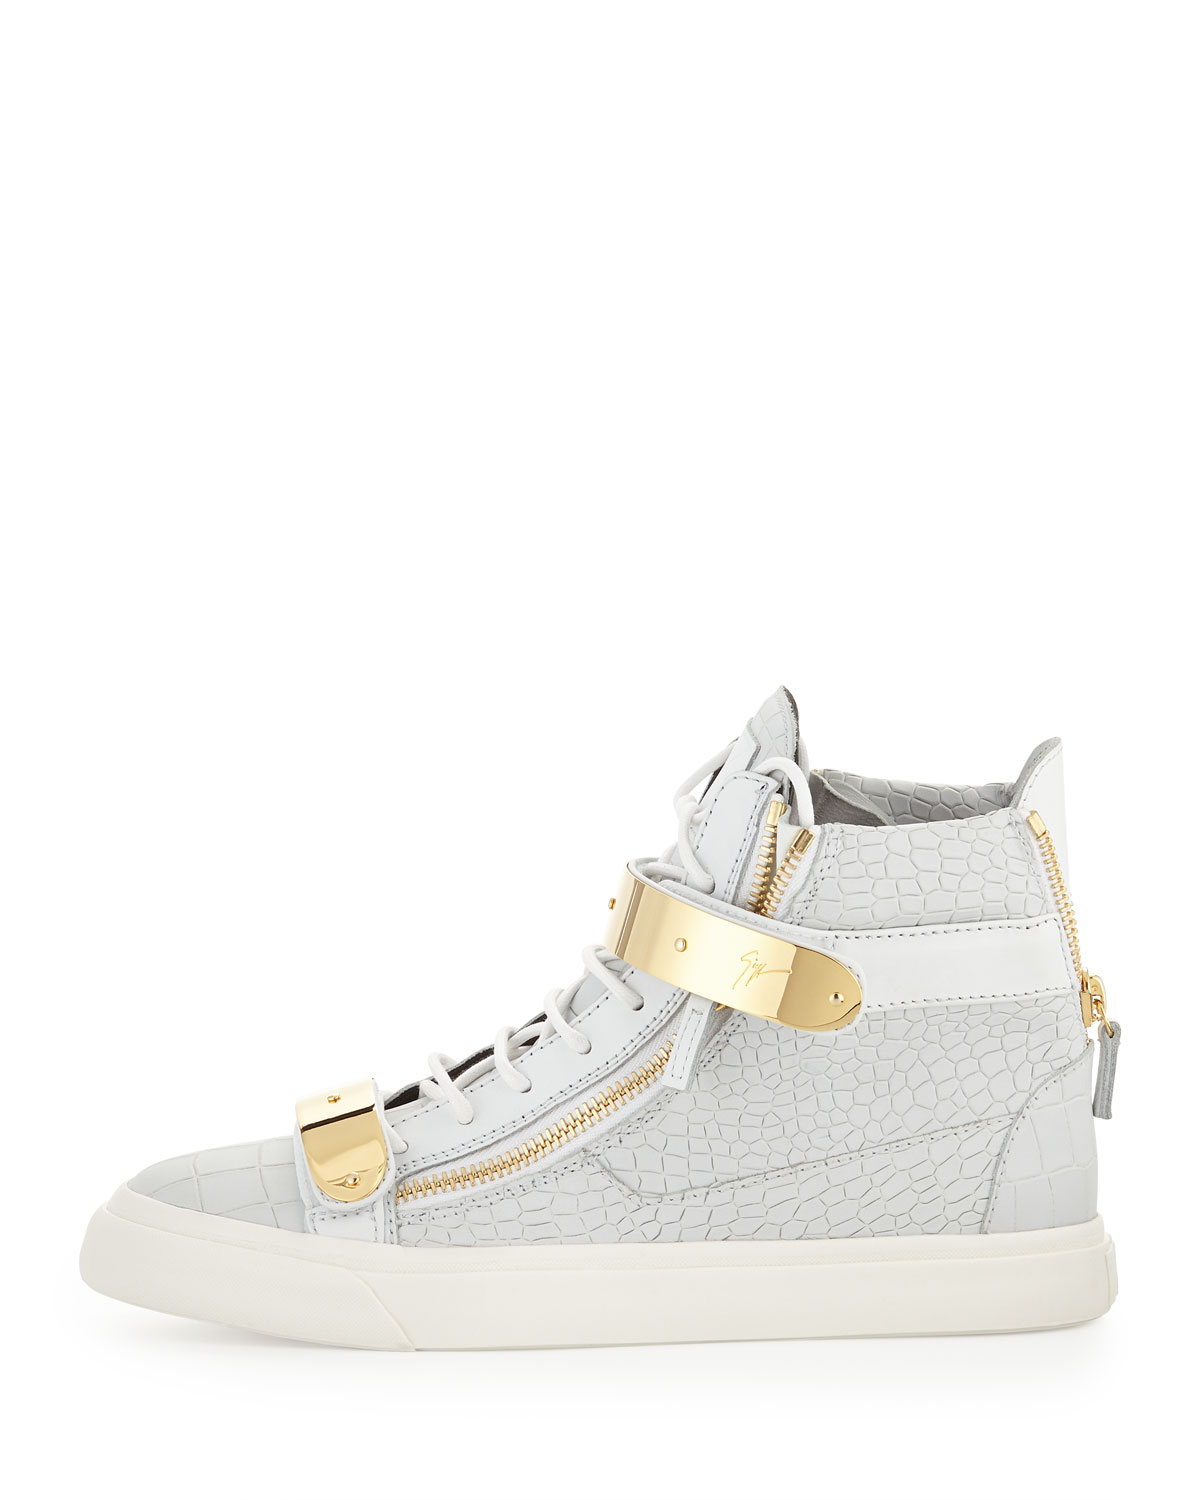 giuseppe zanotti mens plated high top sneakers in white